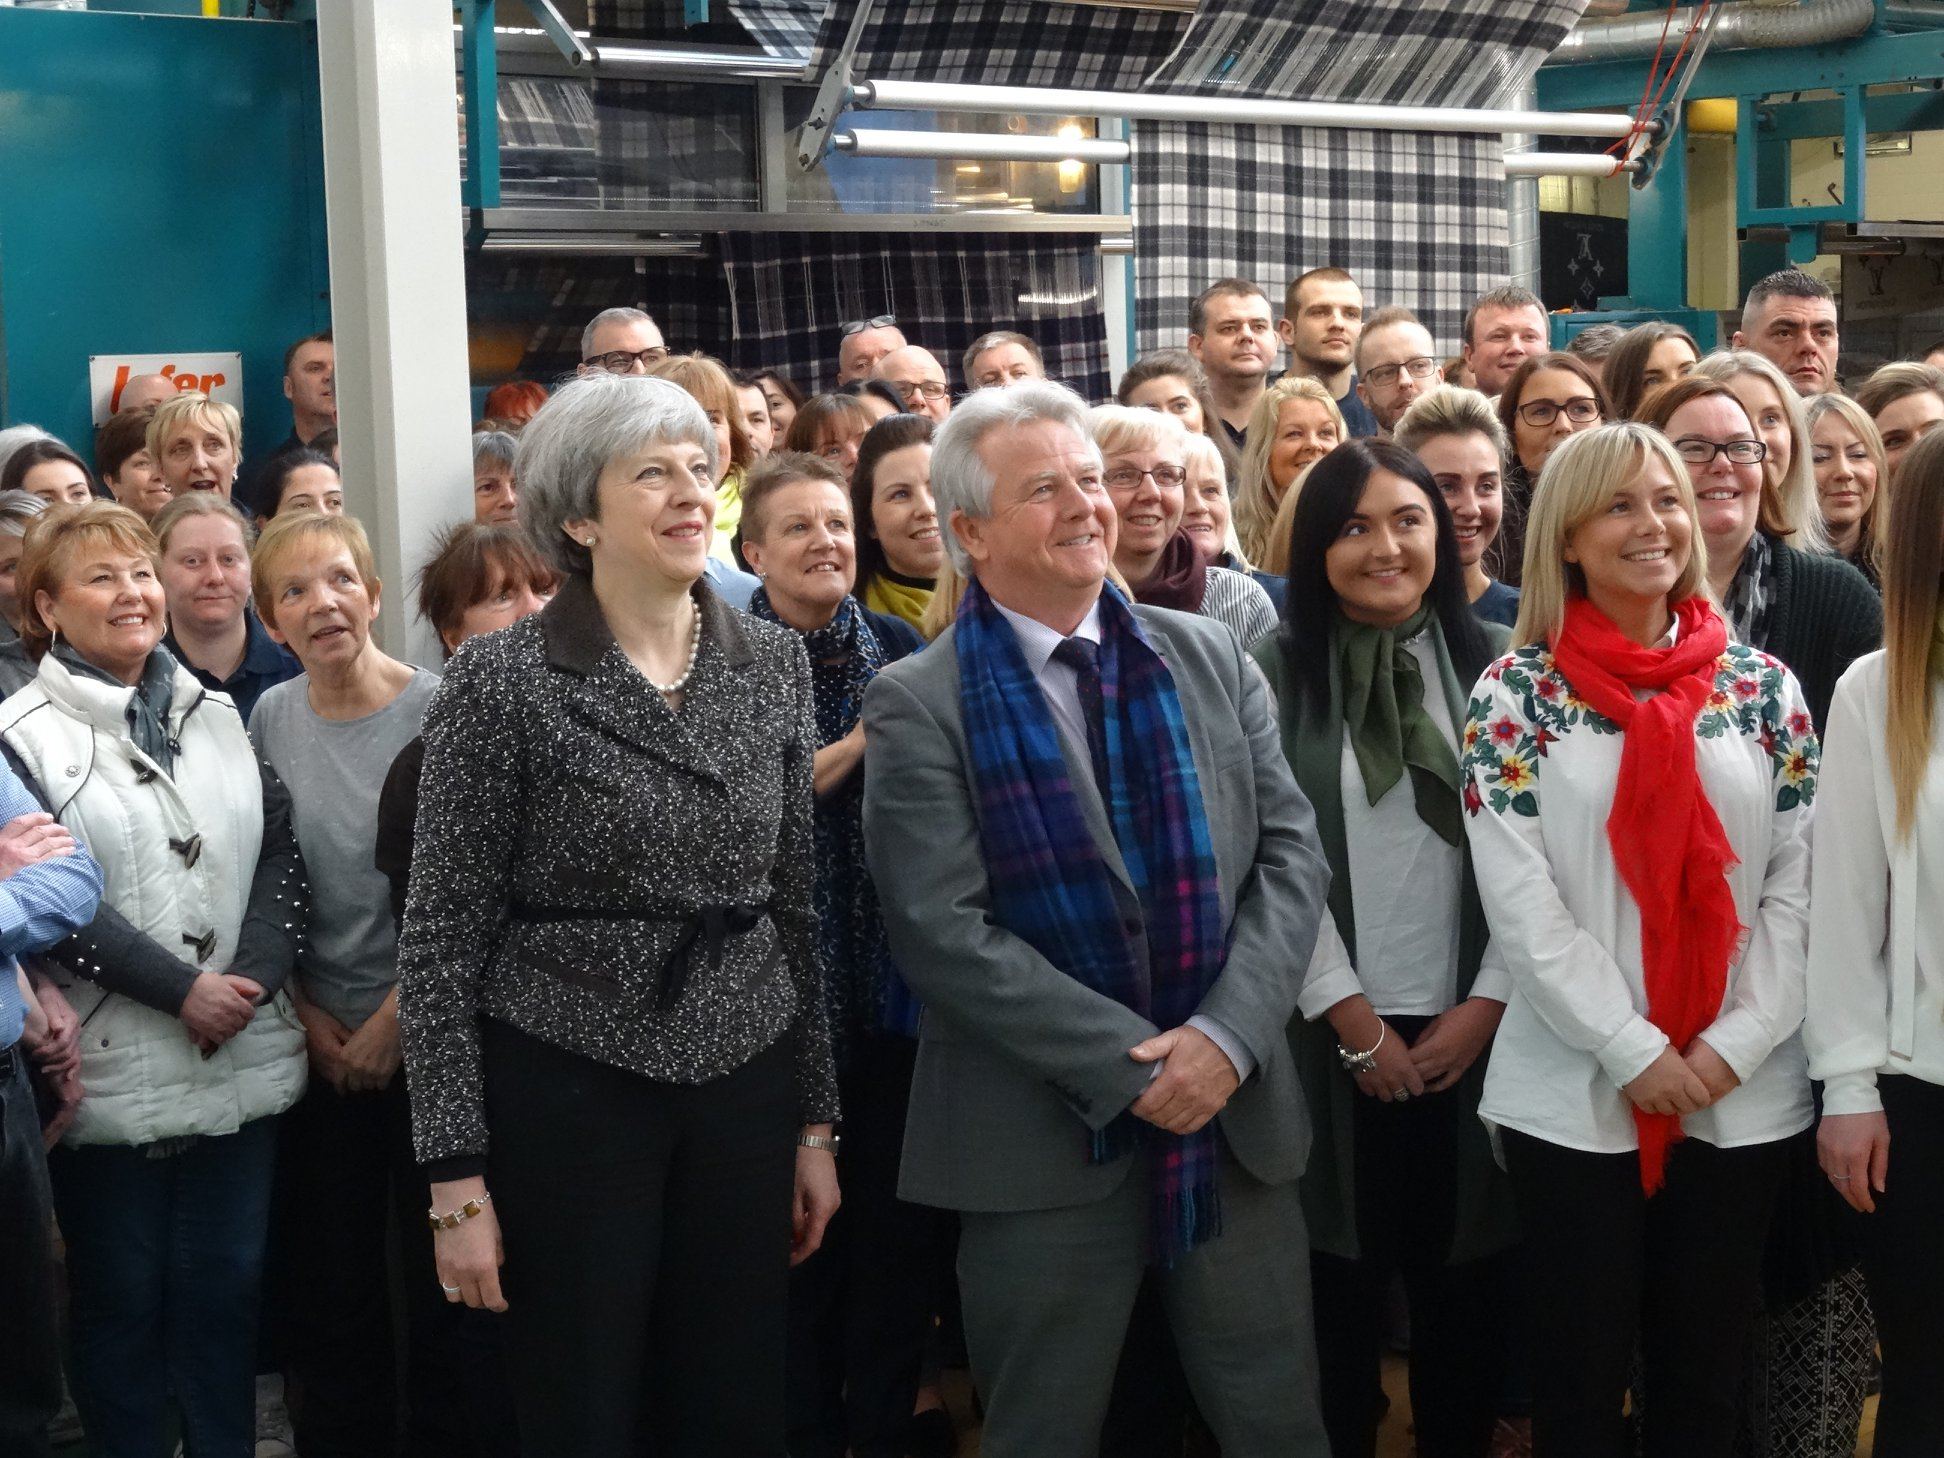 Theresa May's commitment to Ayrshire Growth Deal welcomed